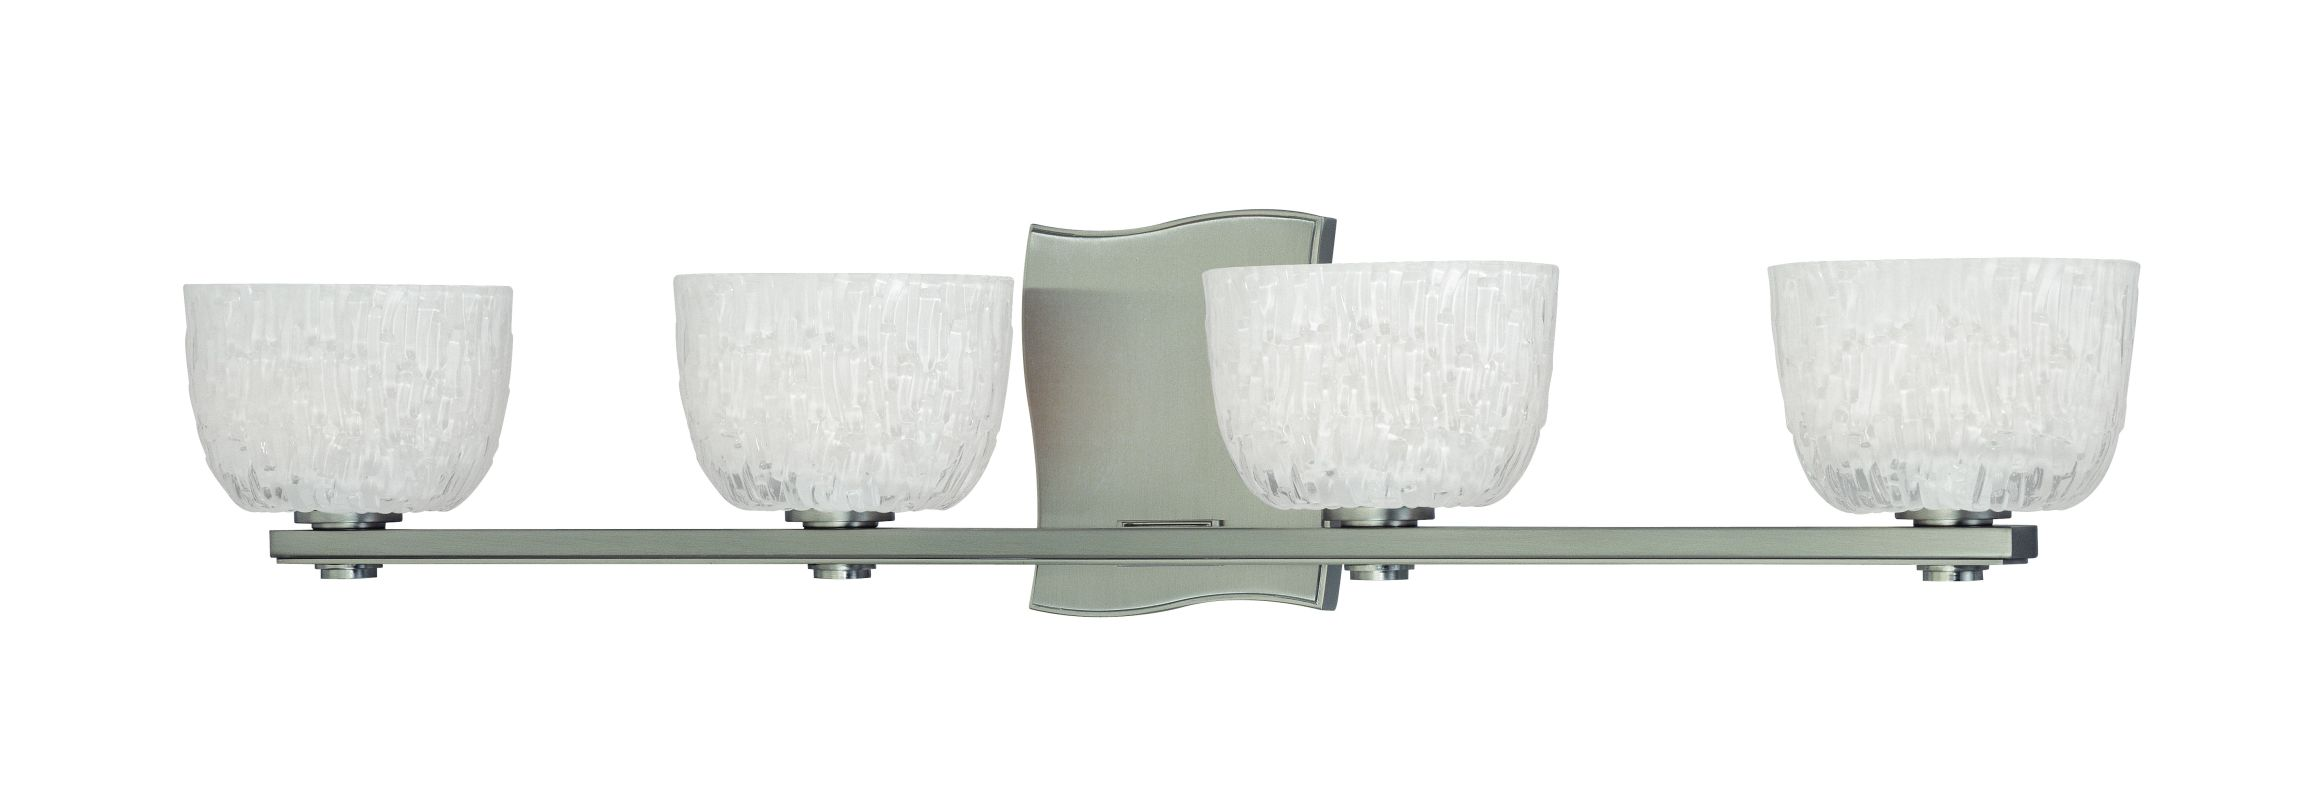 Hudson Valley Lighting 2664 Four Light Up Lighting Bath Vanity with Sale $482.00 ITEM: bci1737239 ID#:2664-SN UPC: 806134123529 :